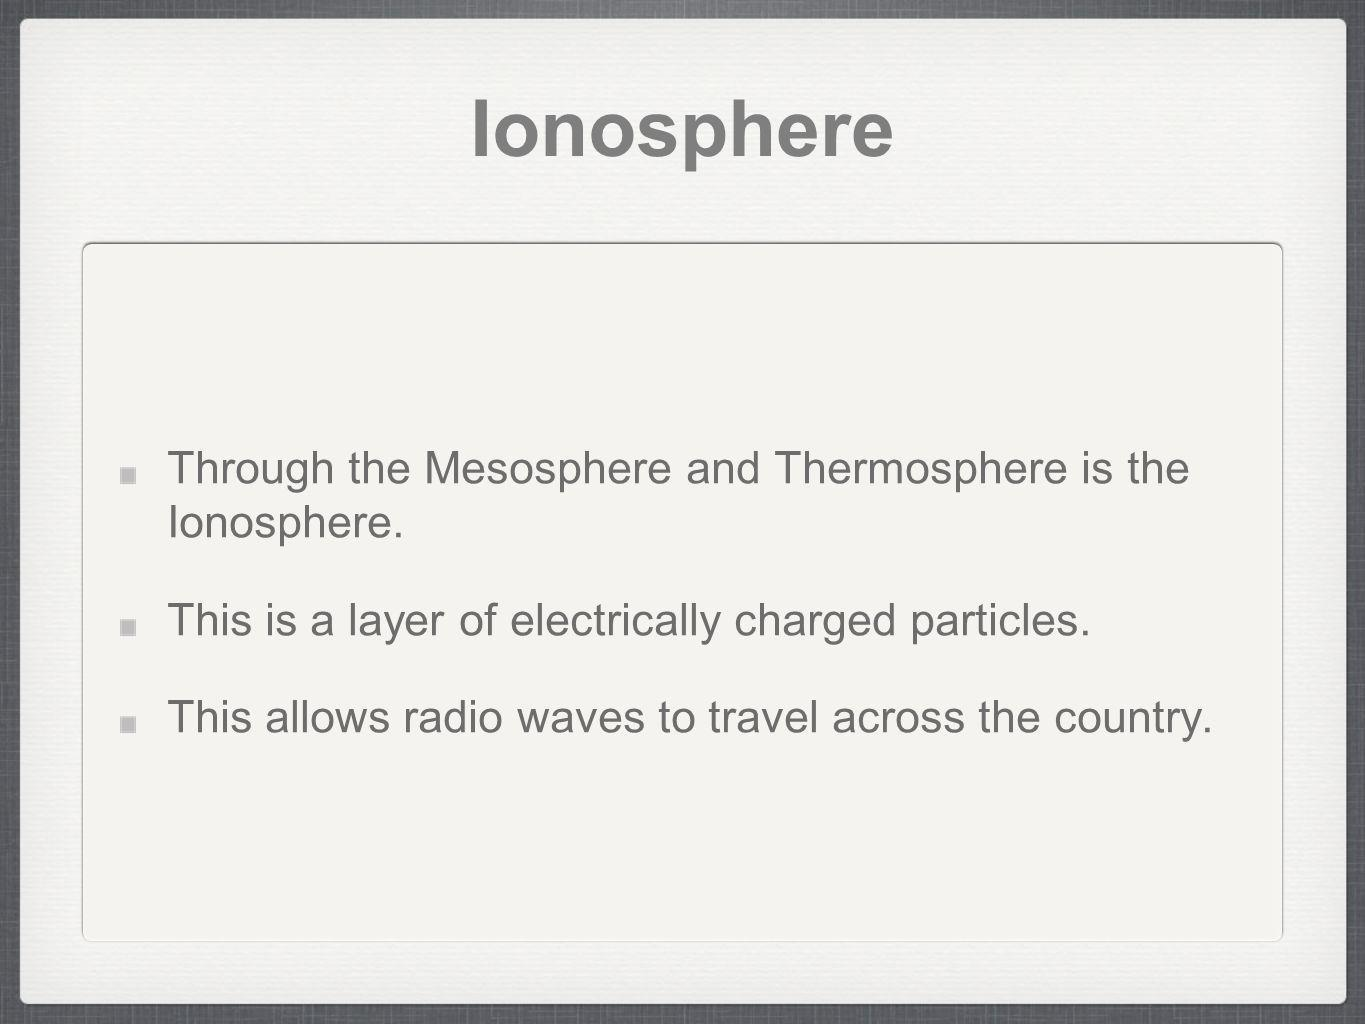 Ionosphere Through the Mesosphere and Thermosphere is the Ionosphere.